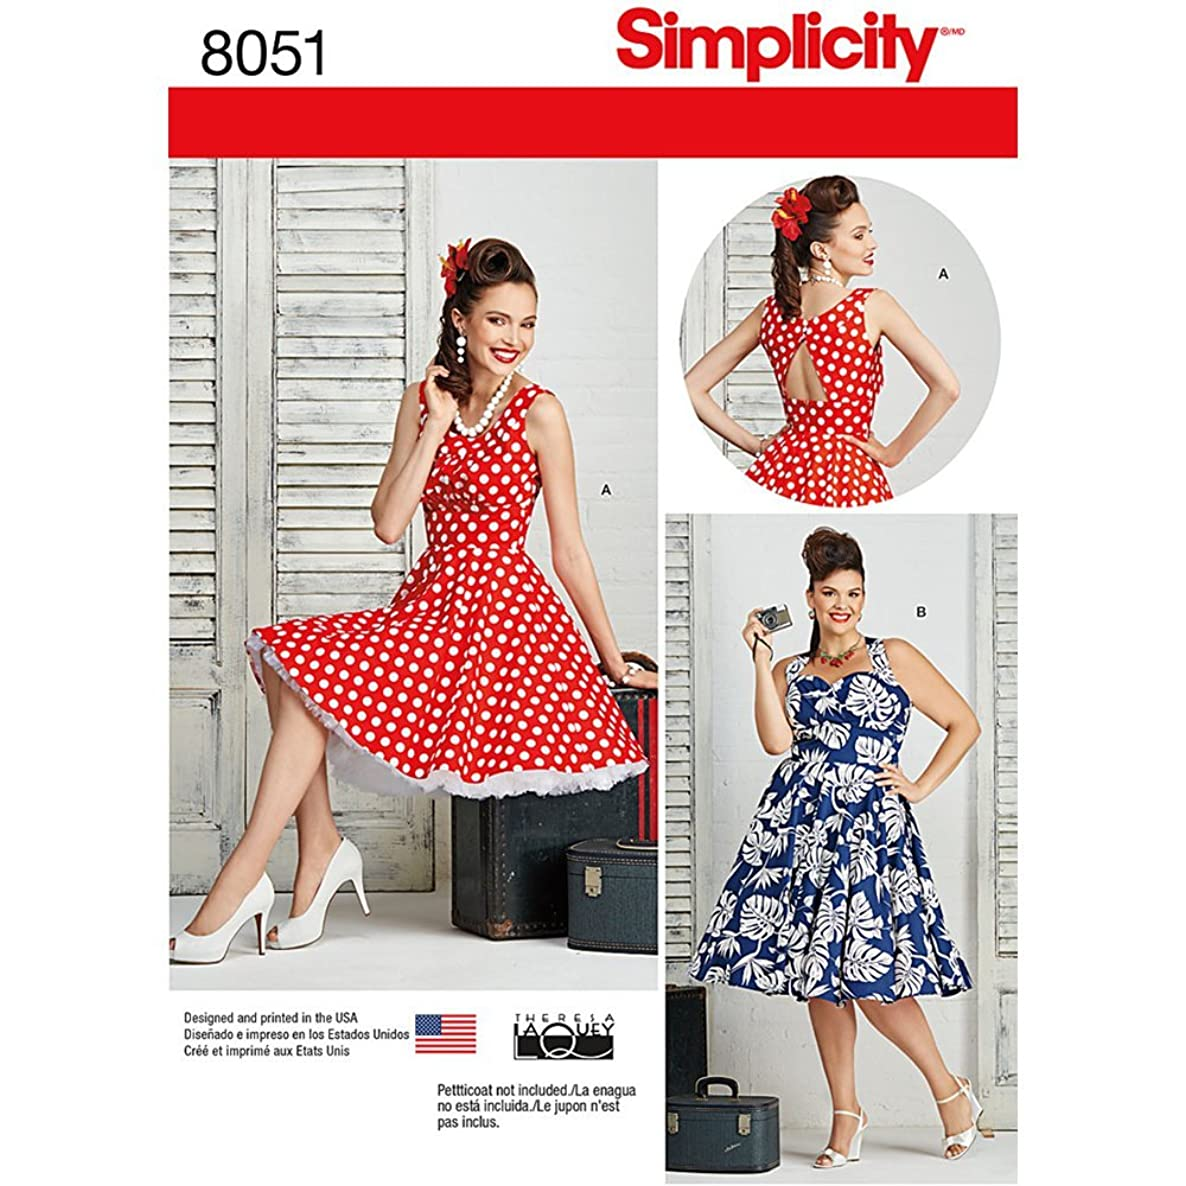 Simplicity 8051 1950's Vintage Fashion Women's Pin Up Dress Sewing Pattern by Theresa Laquey, Sizes 20W-28W